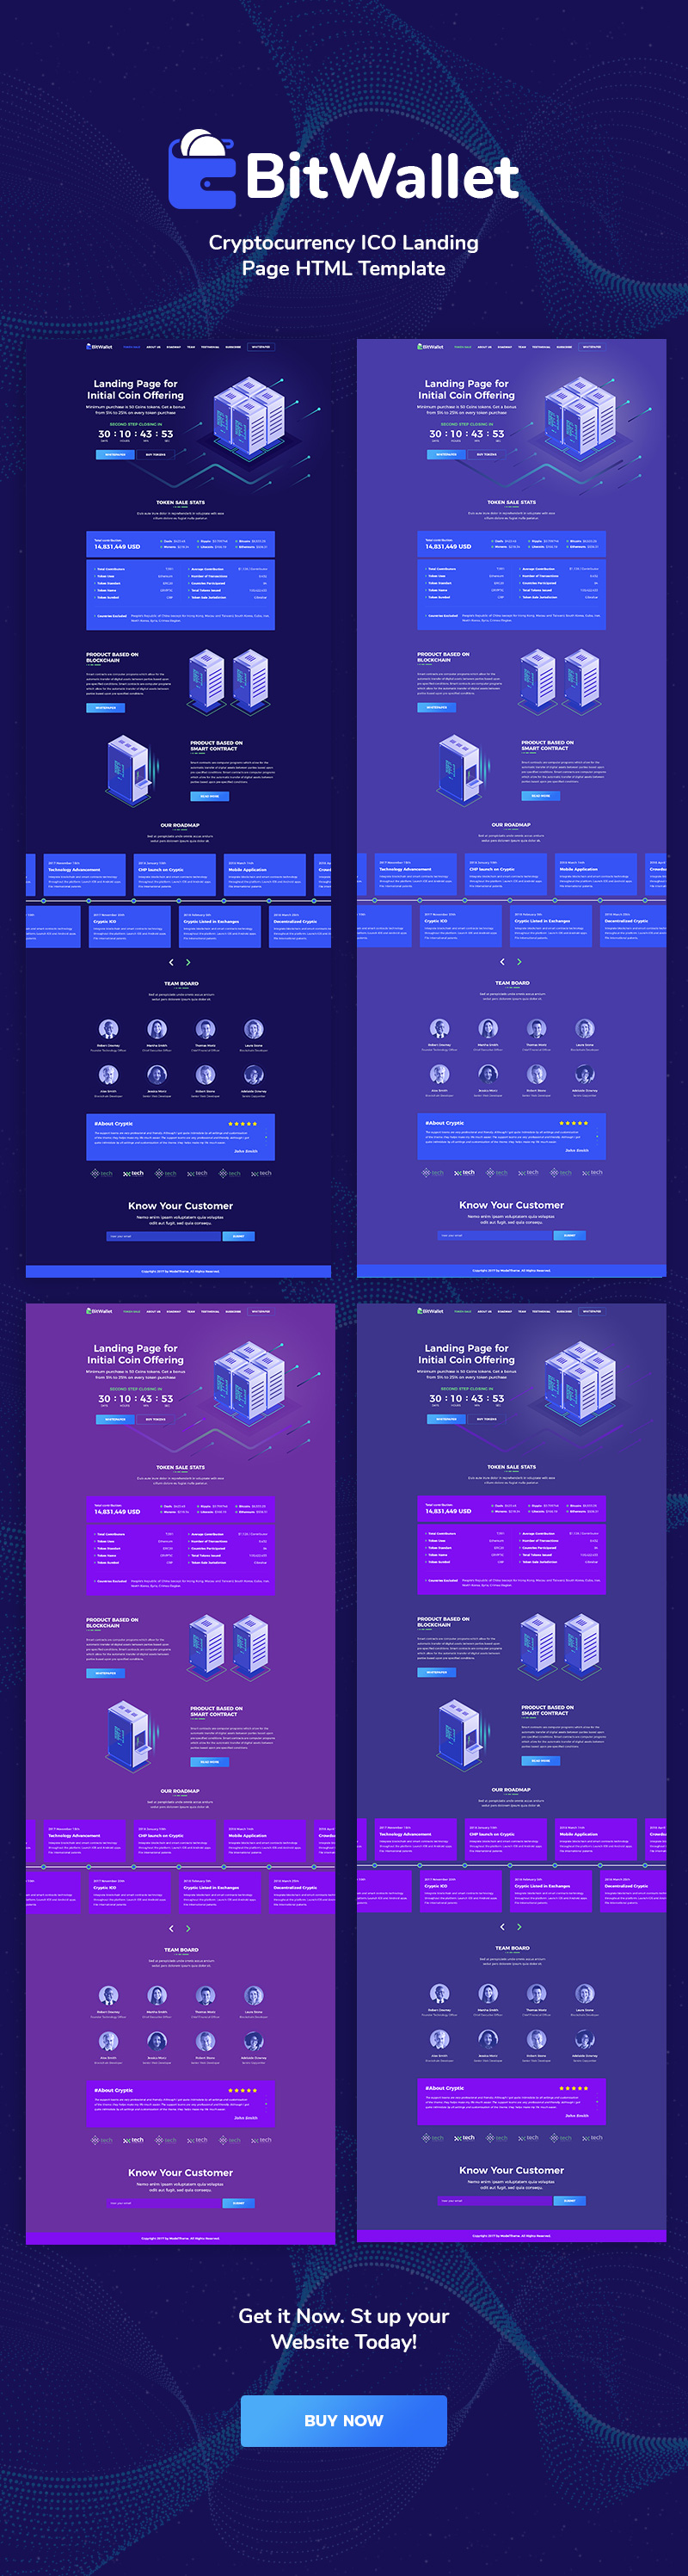 BitWallet - Cryptocurrency ICO Landing Page HTML Template